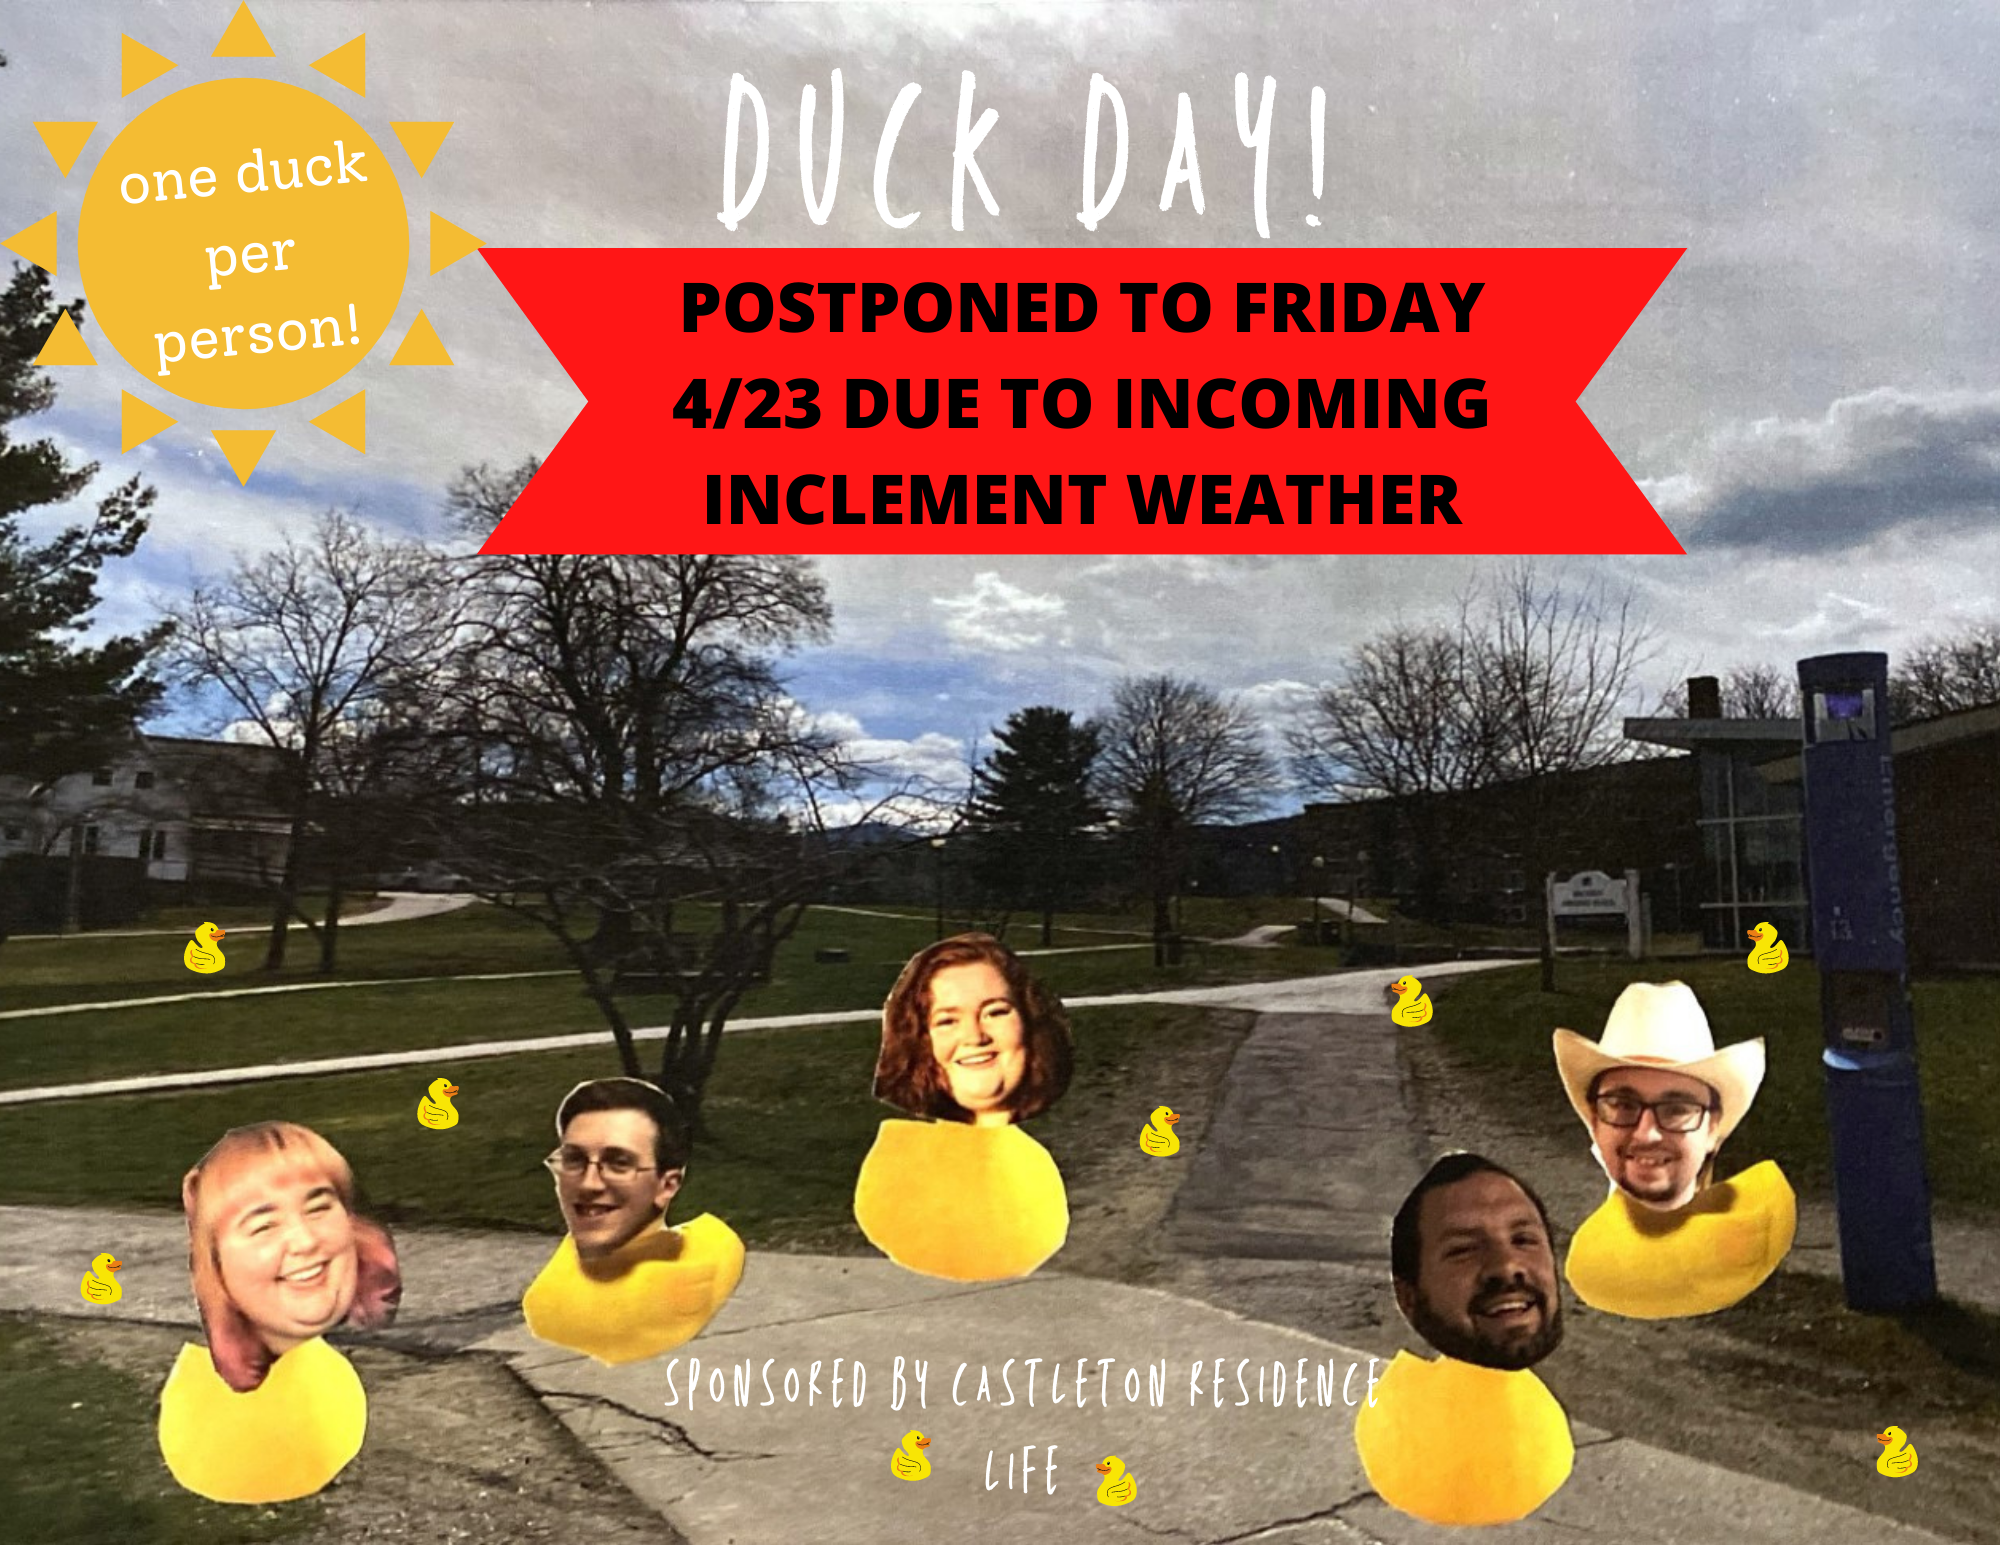 Duck Day Postponed to Friday April 23rd!